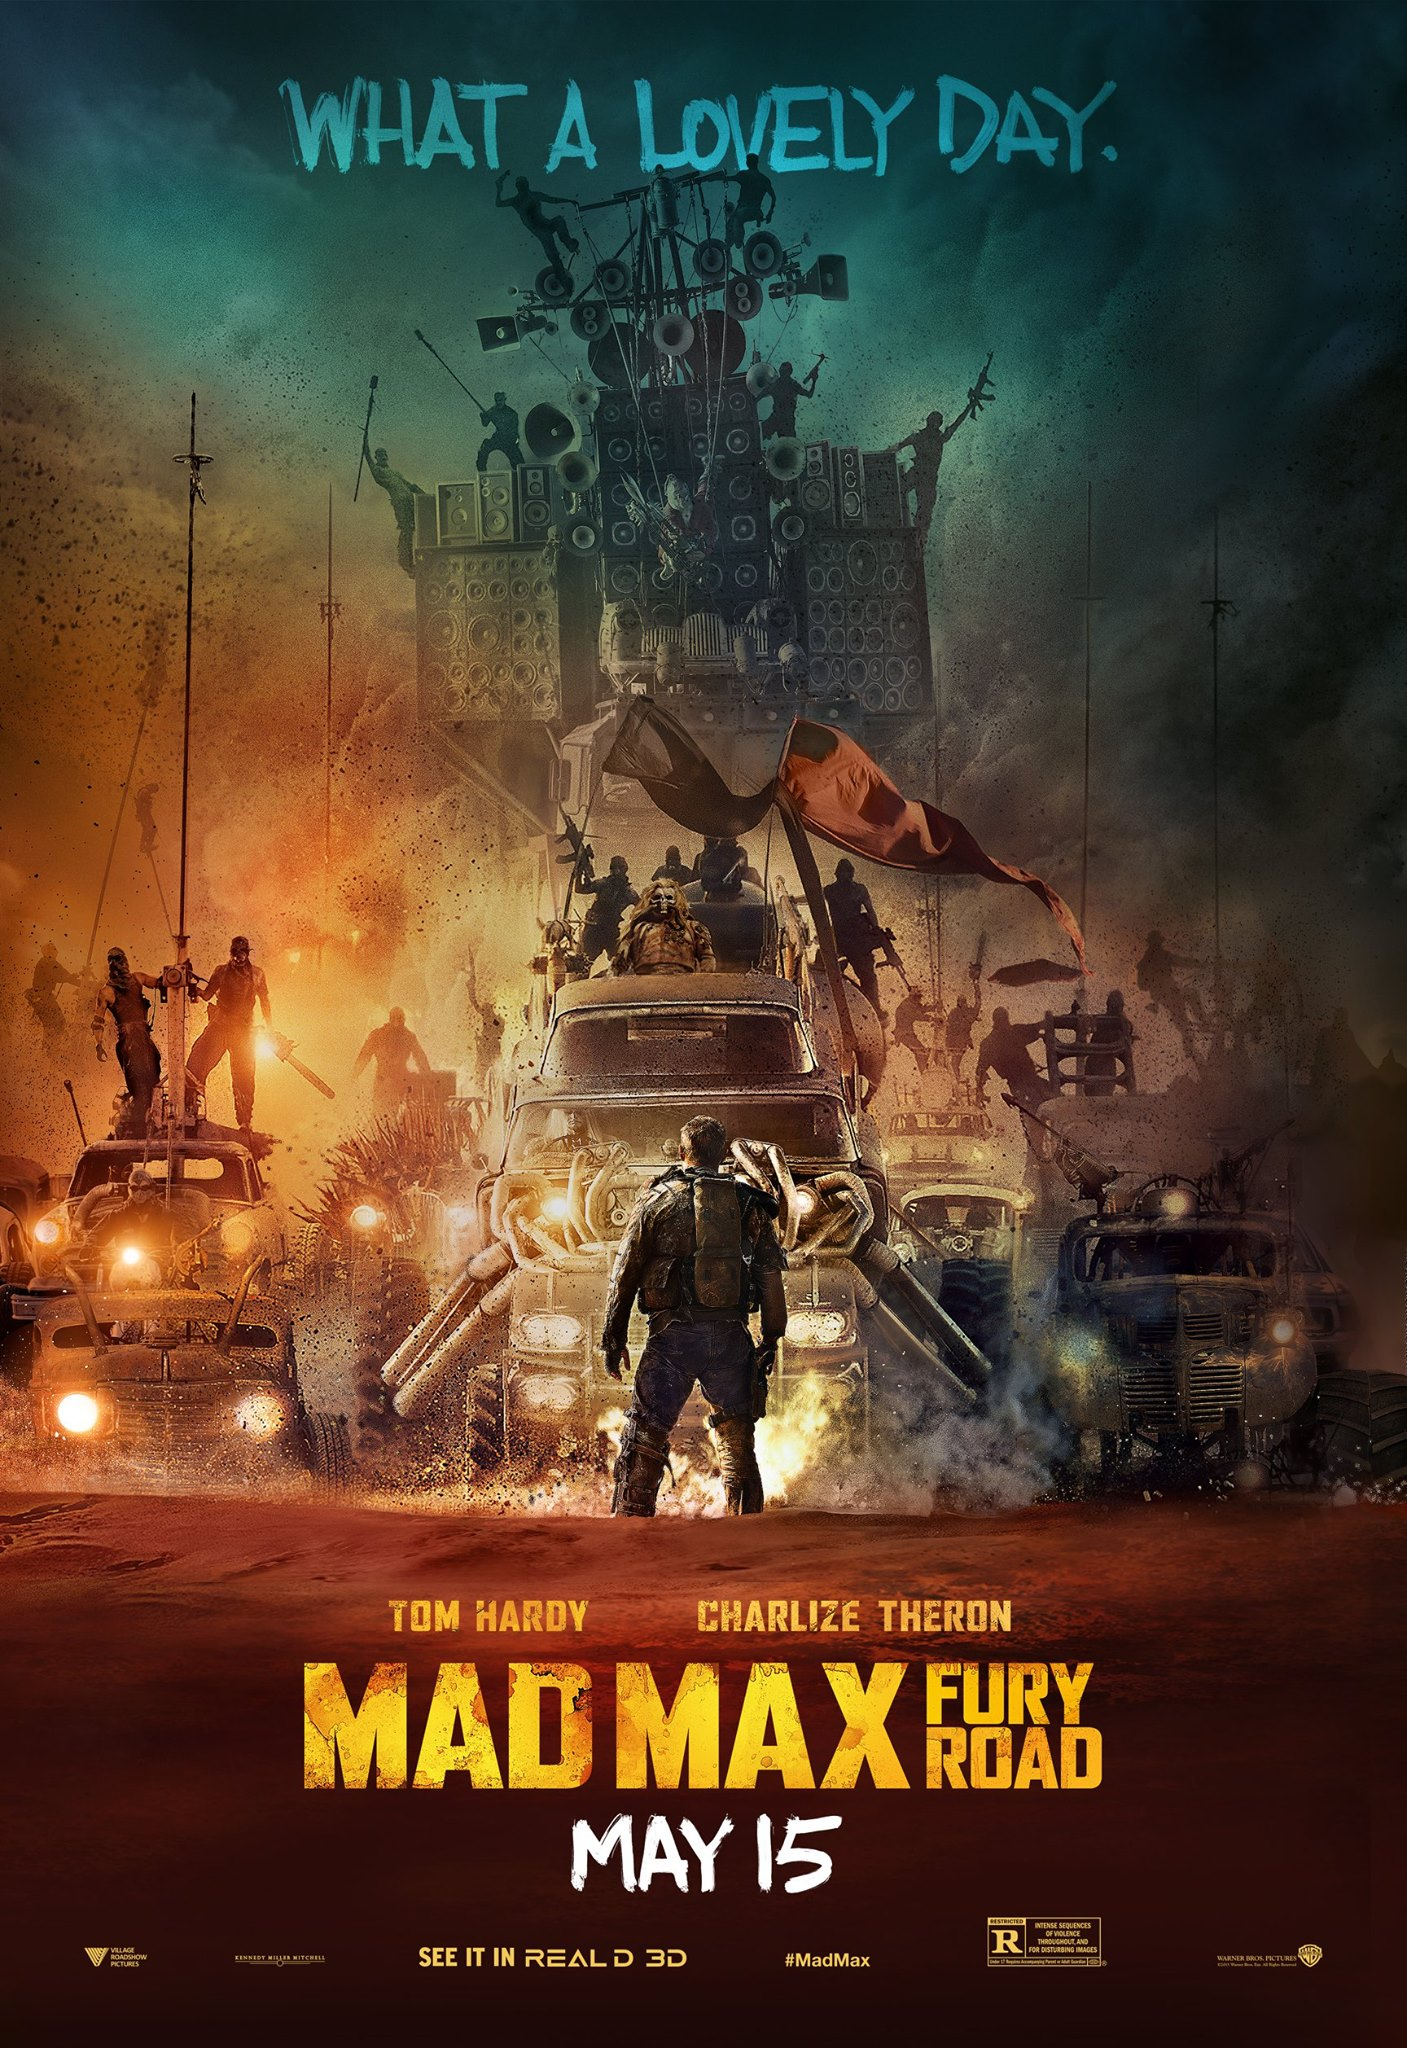 http://www.ramascreen.com/wp-content/uploads/2015/04/Mad-Max-Fury-Road.jpg